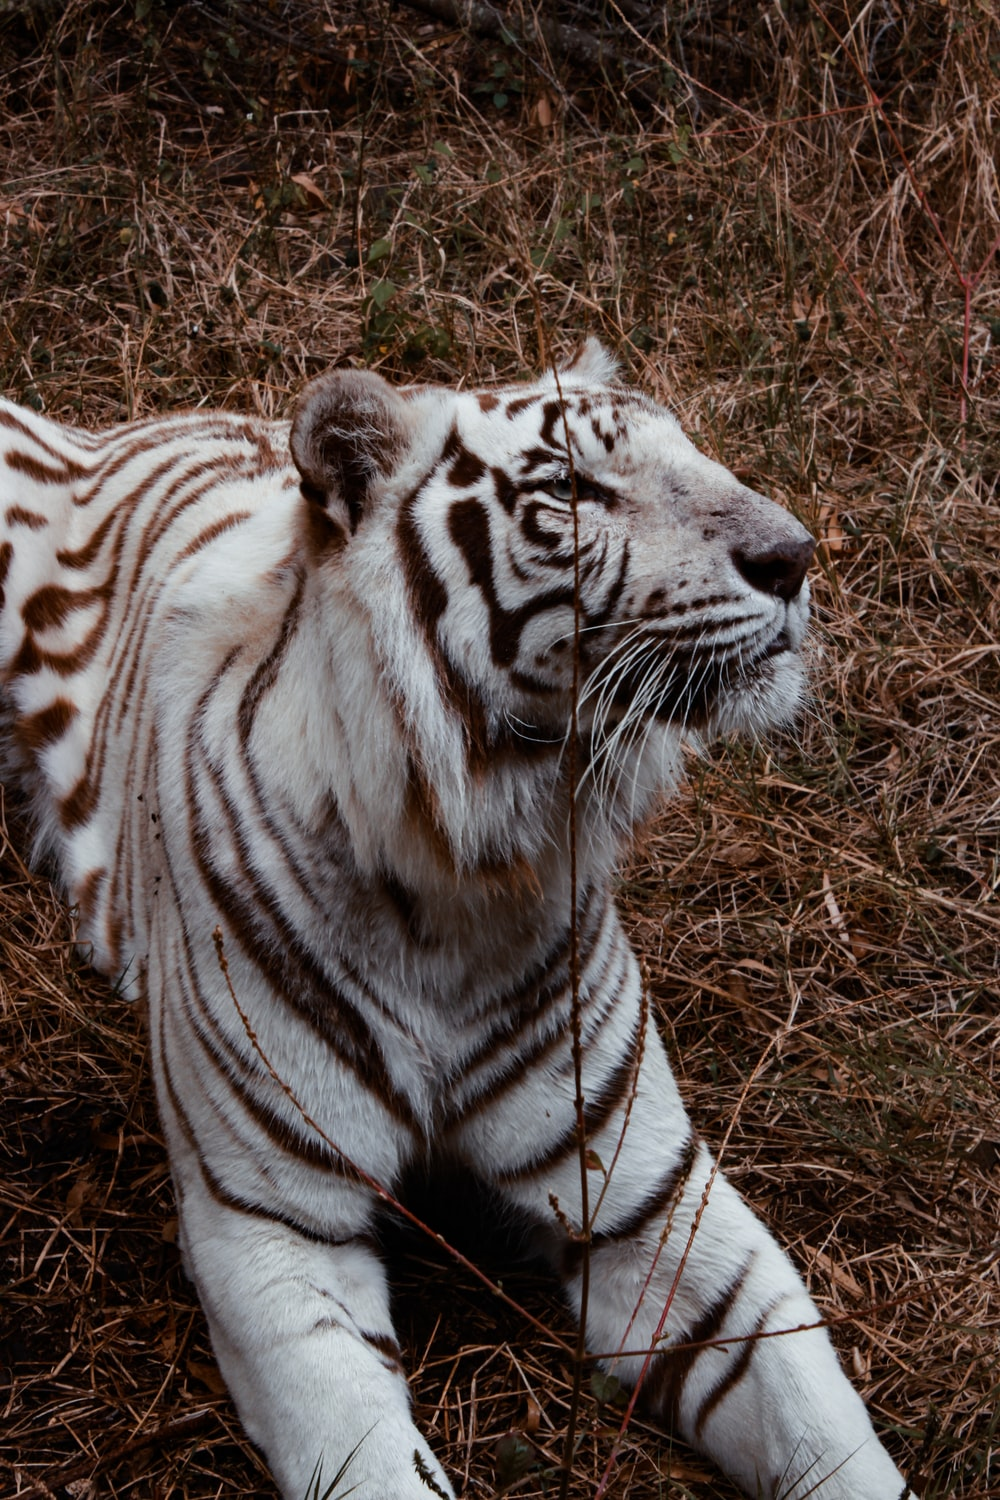 white and black tiger lying on grass